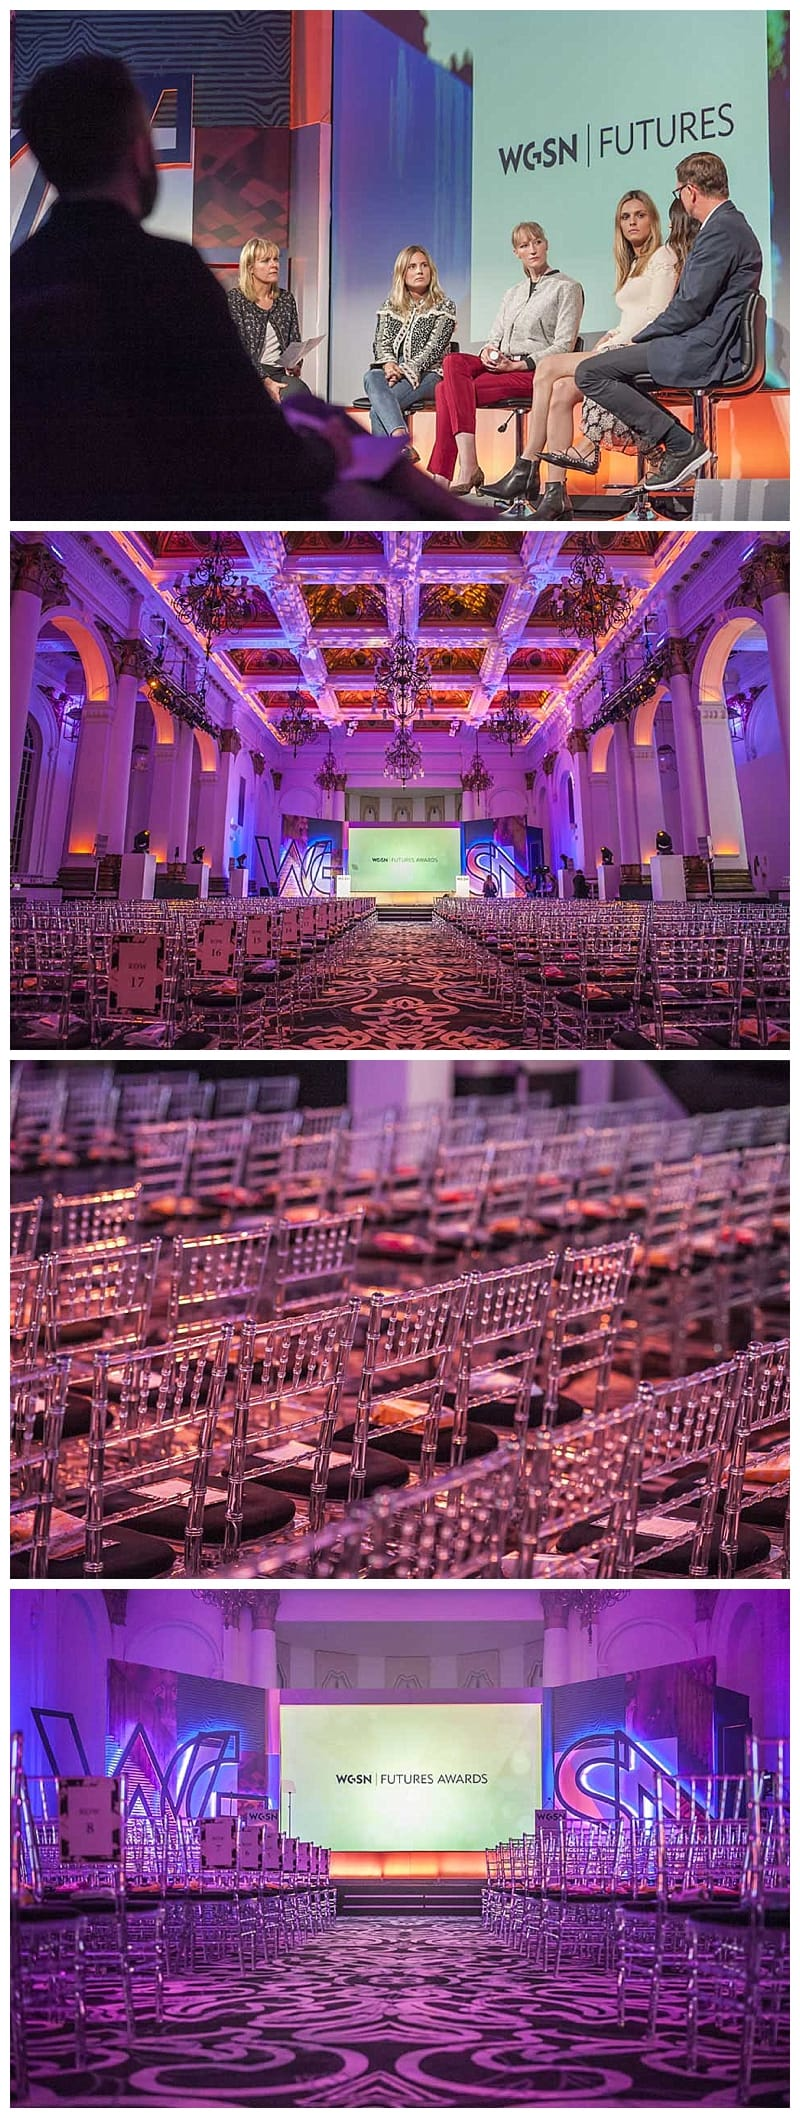 wgsn-conference-benjamin-wetherall-photography-0009